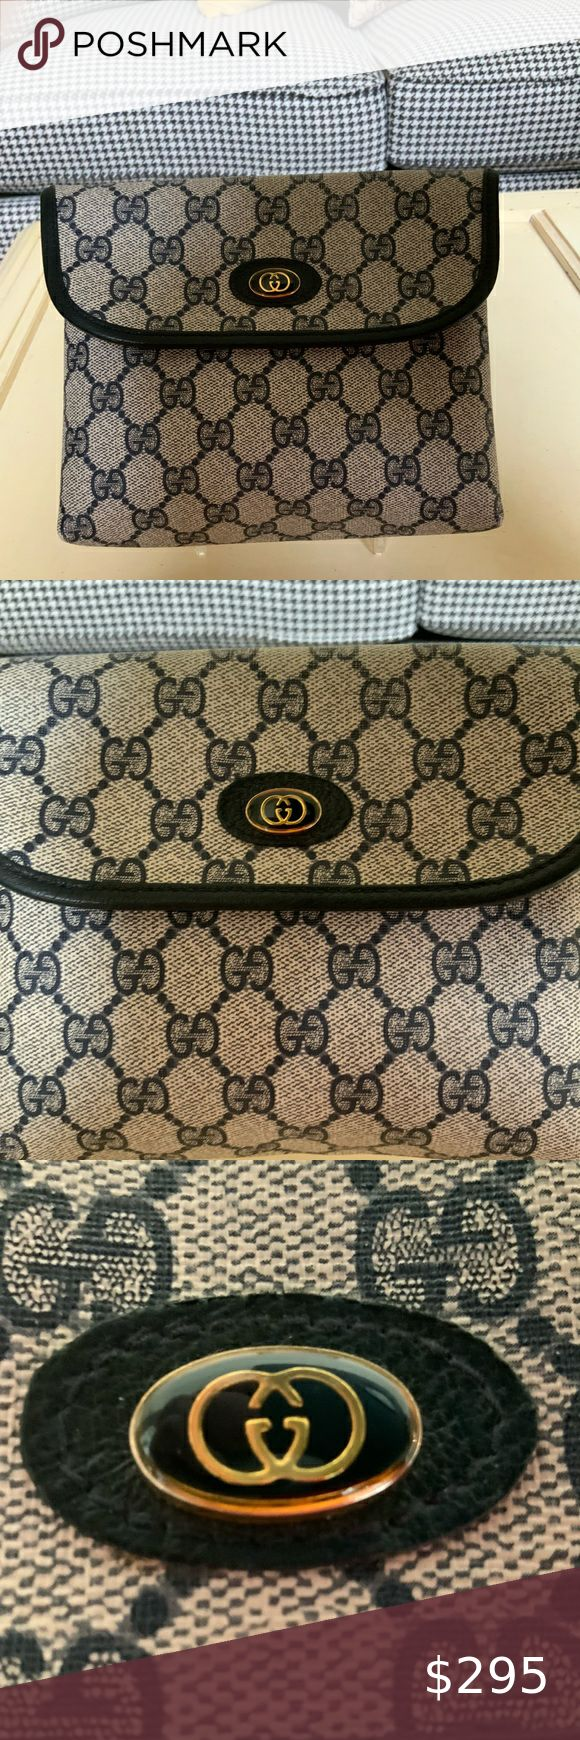 VINTAGE GUCCI NAVY LOGO CANVAS COSMETIC CASE BAG in 2020